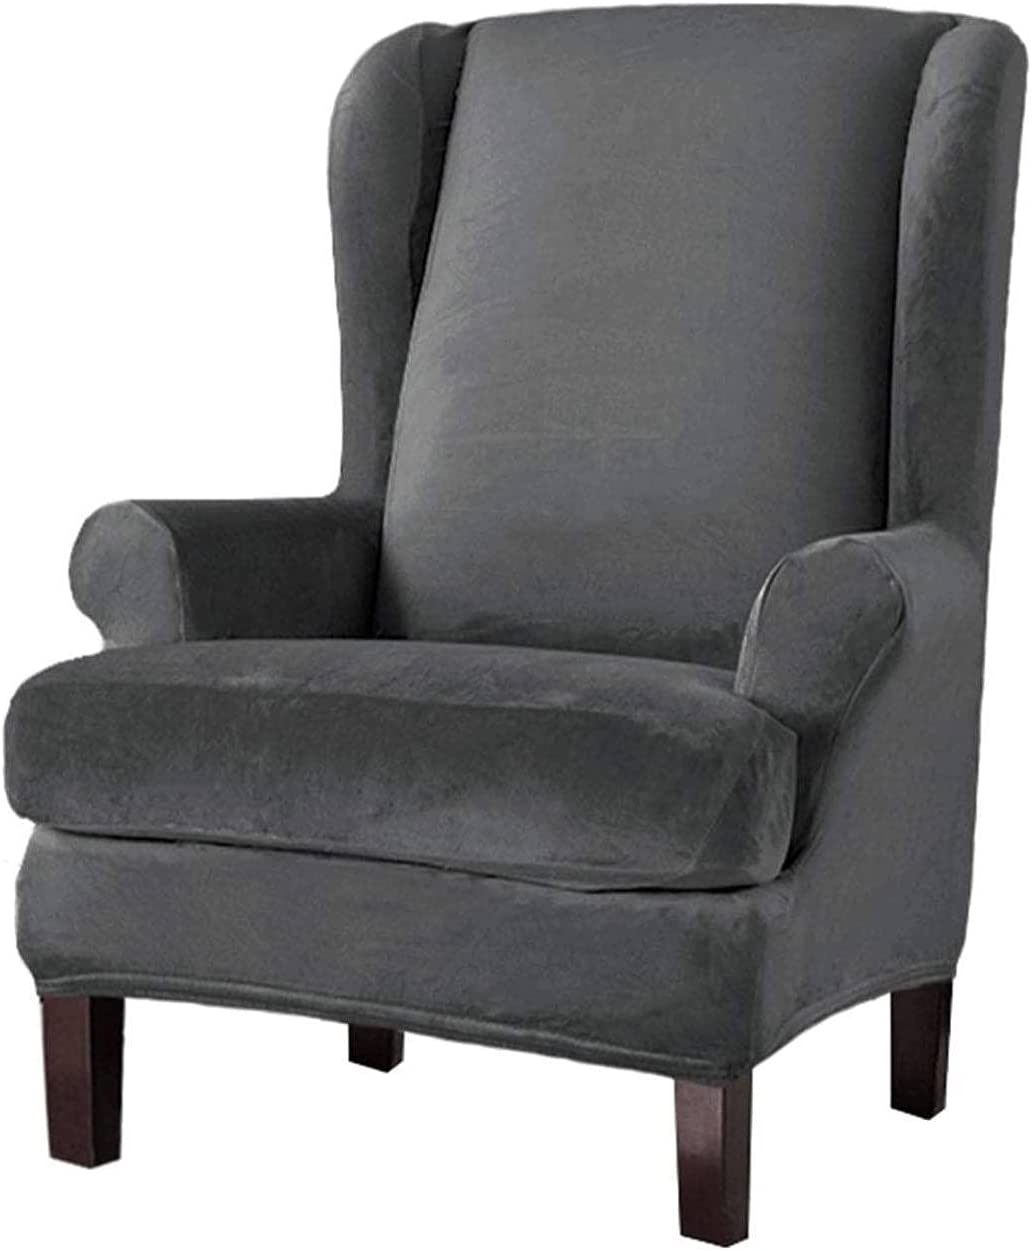 Velvet Wing Special price Chair Slipcover Wingback Max 81% OFF 2 Pieces Covers